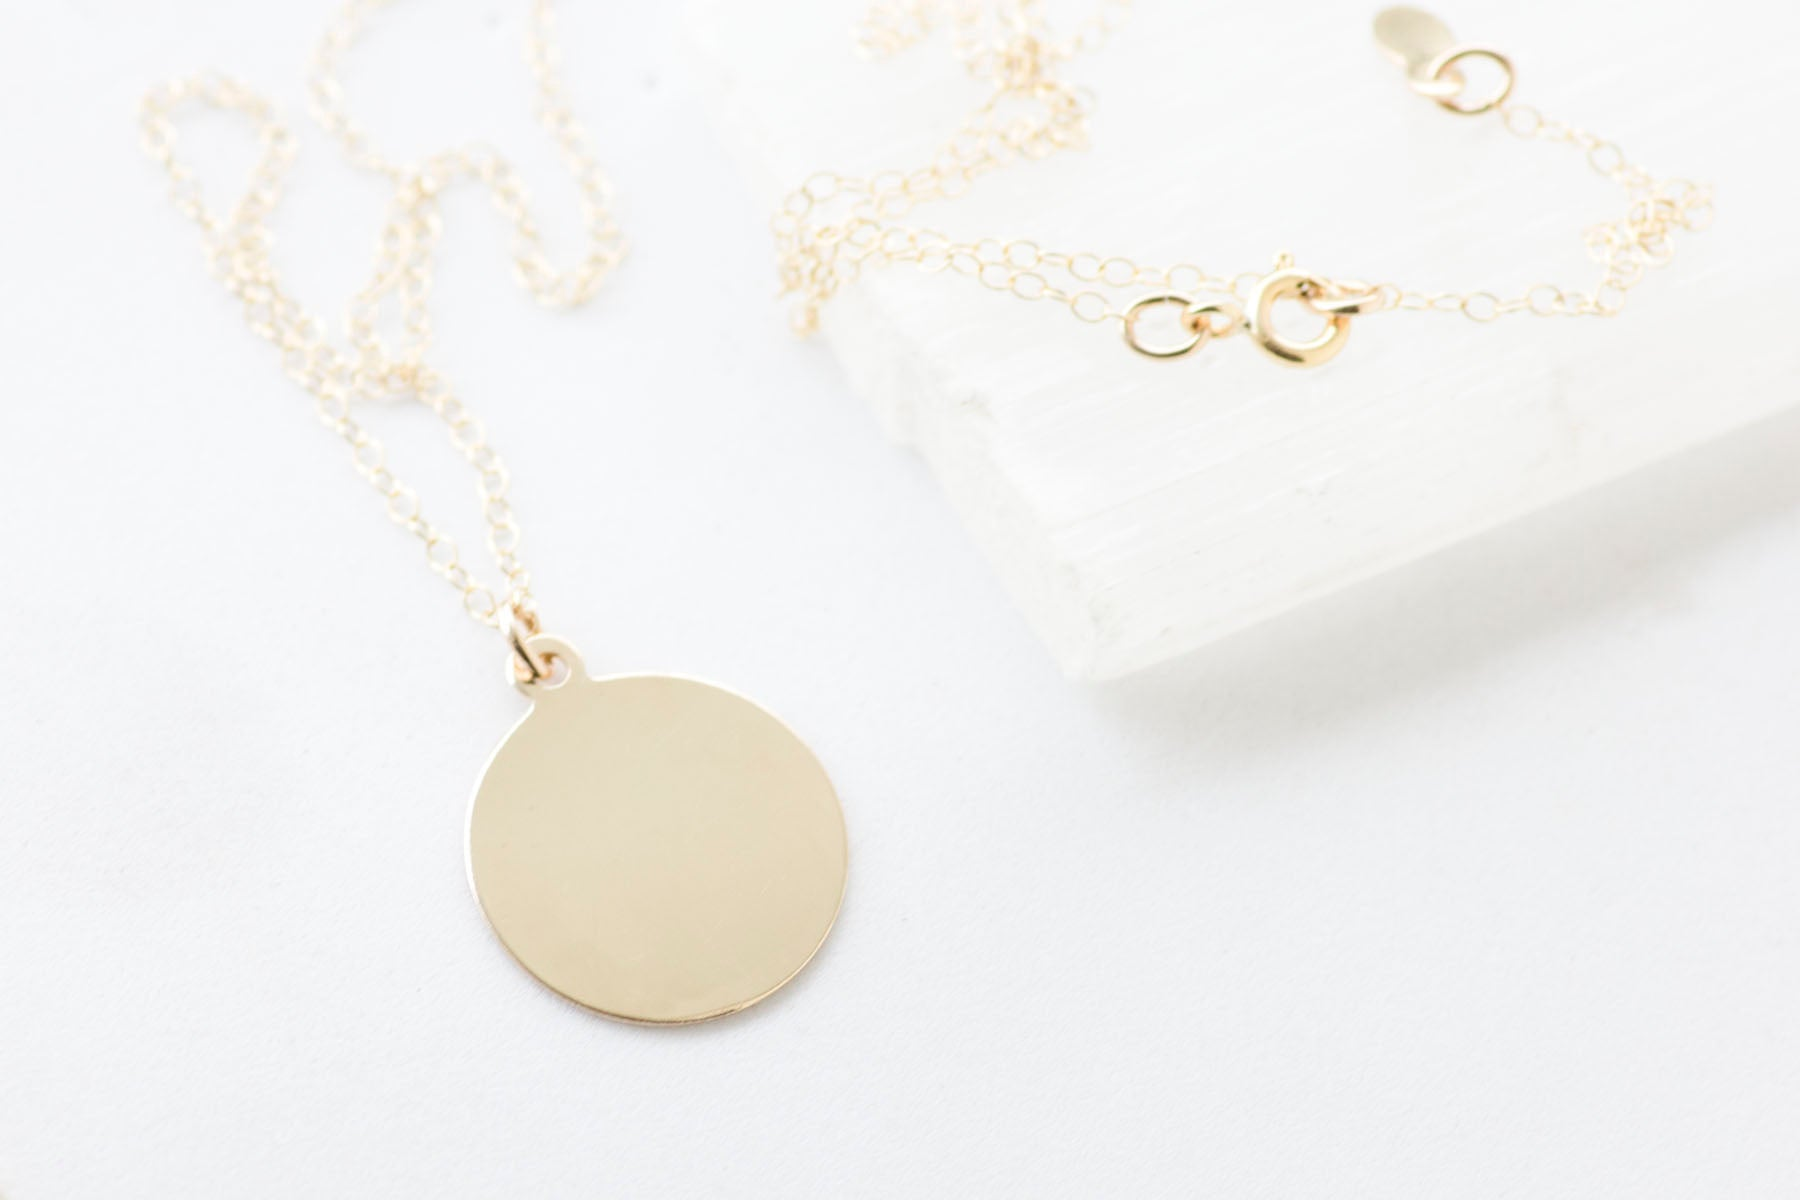 Atlas necklace -IvyDesignJewellery